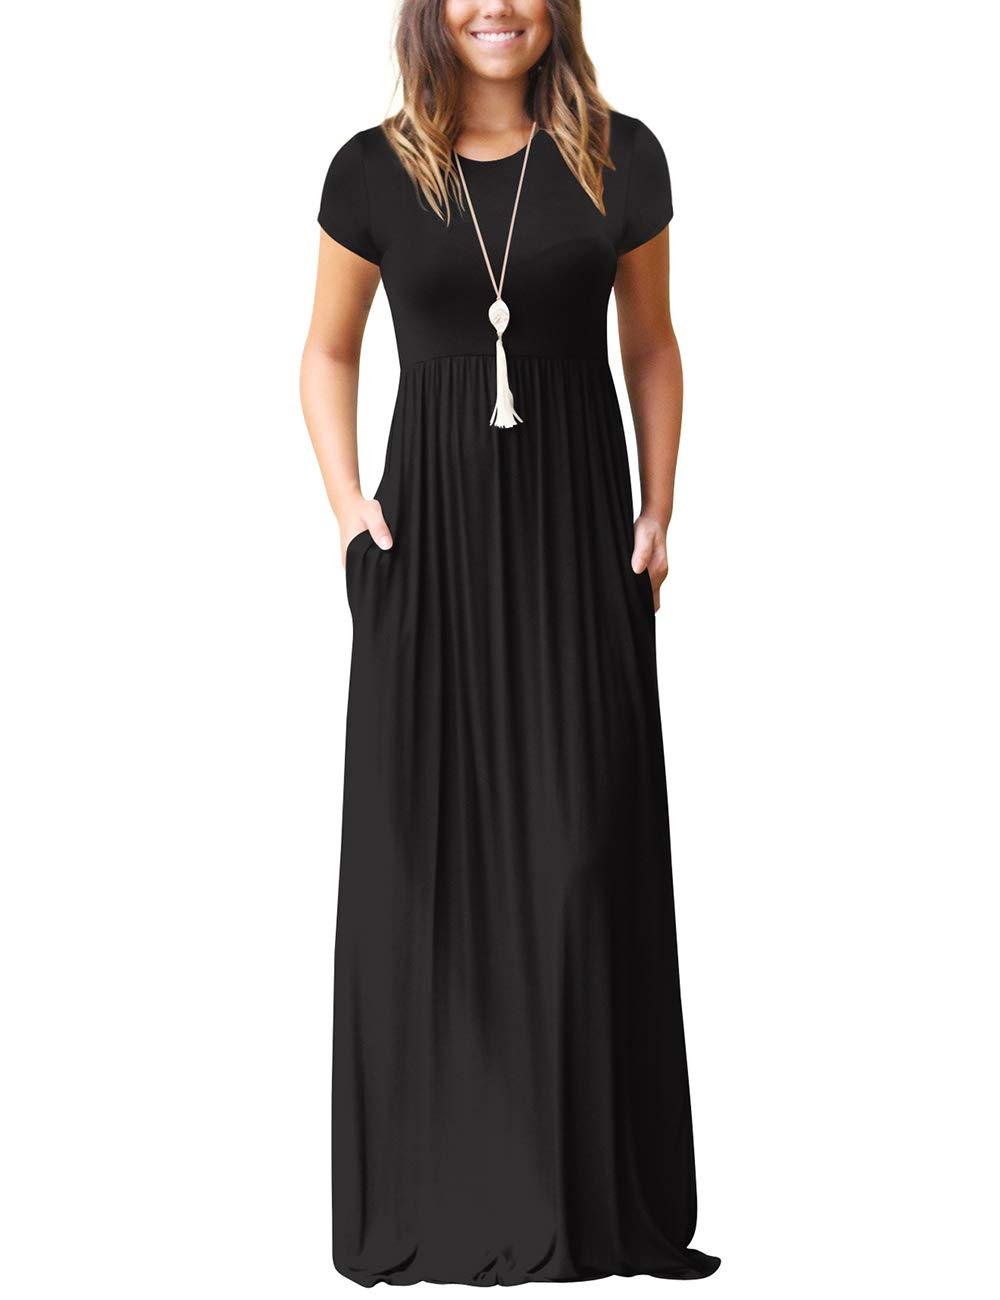 Maxi Dresses for Women Casual Loose Long Dress with Pockets Tall Dress S-XXL